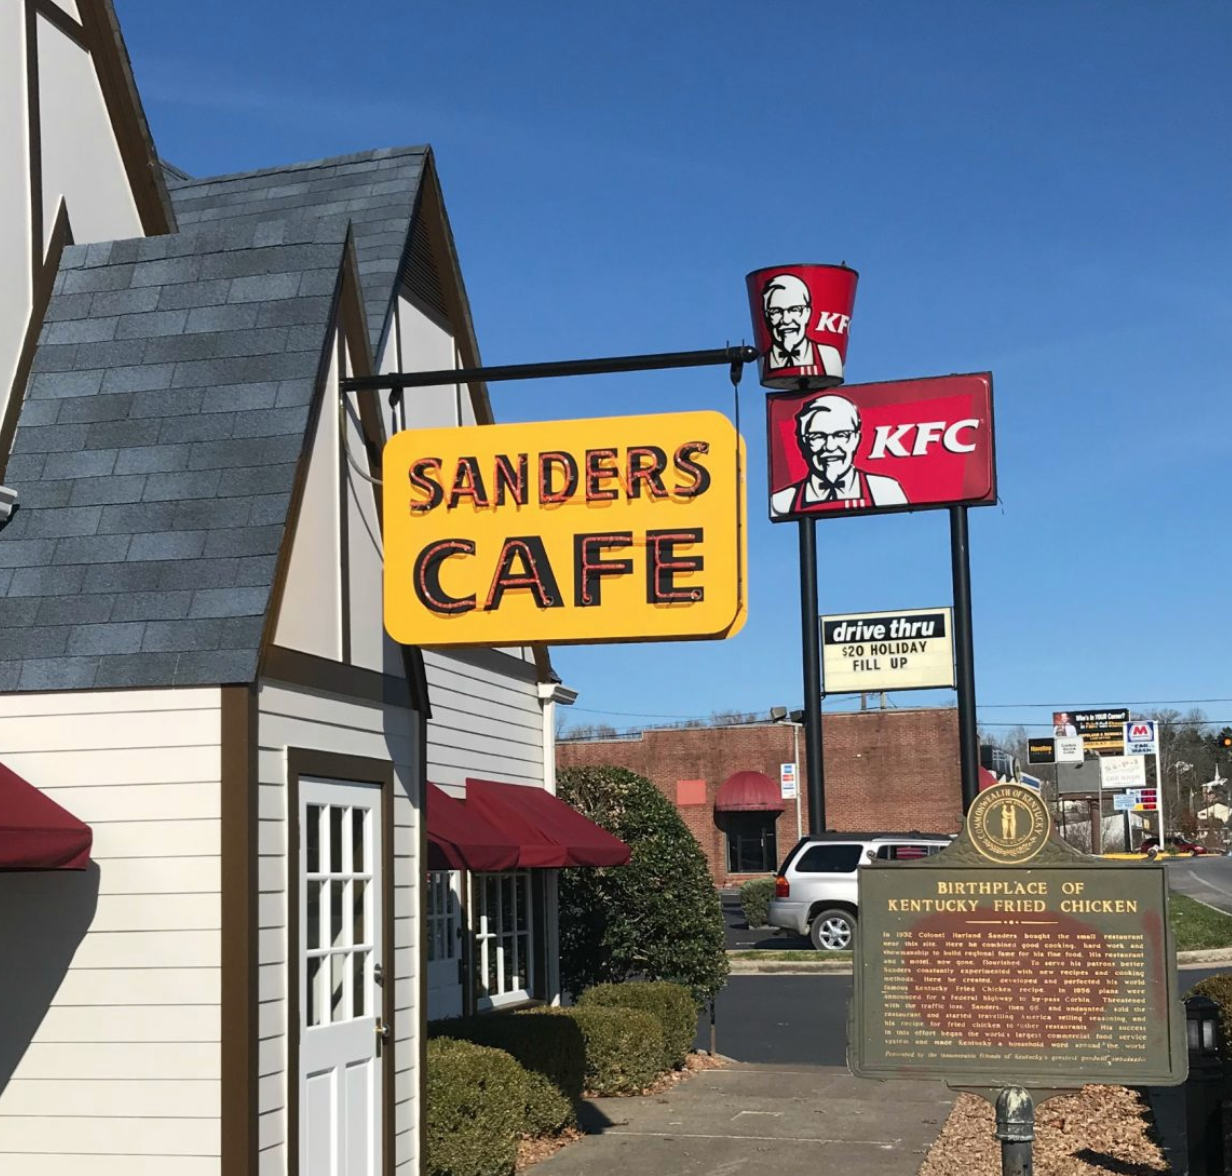 Sanders Cafe Corbin Kentucky